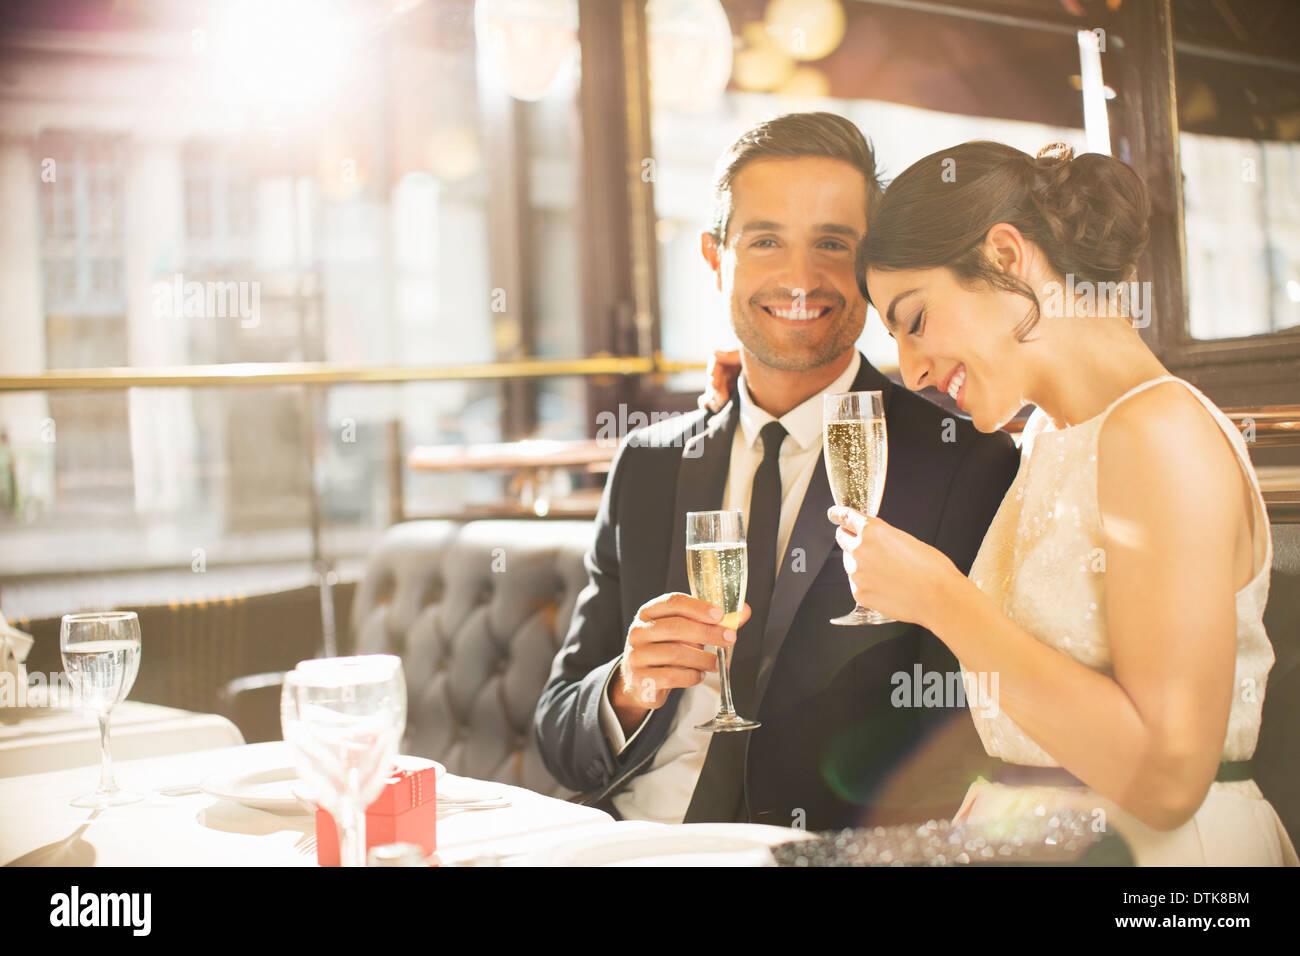 Well-dressed couple drinking champagne in restaurant - Stock Image